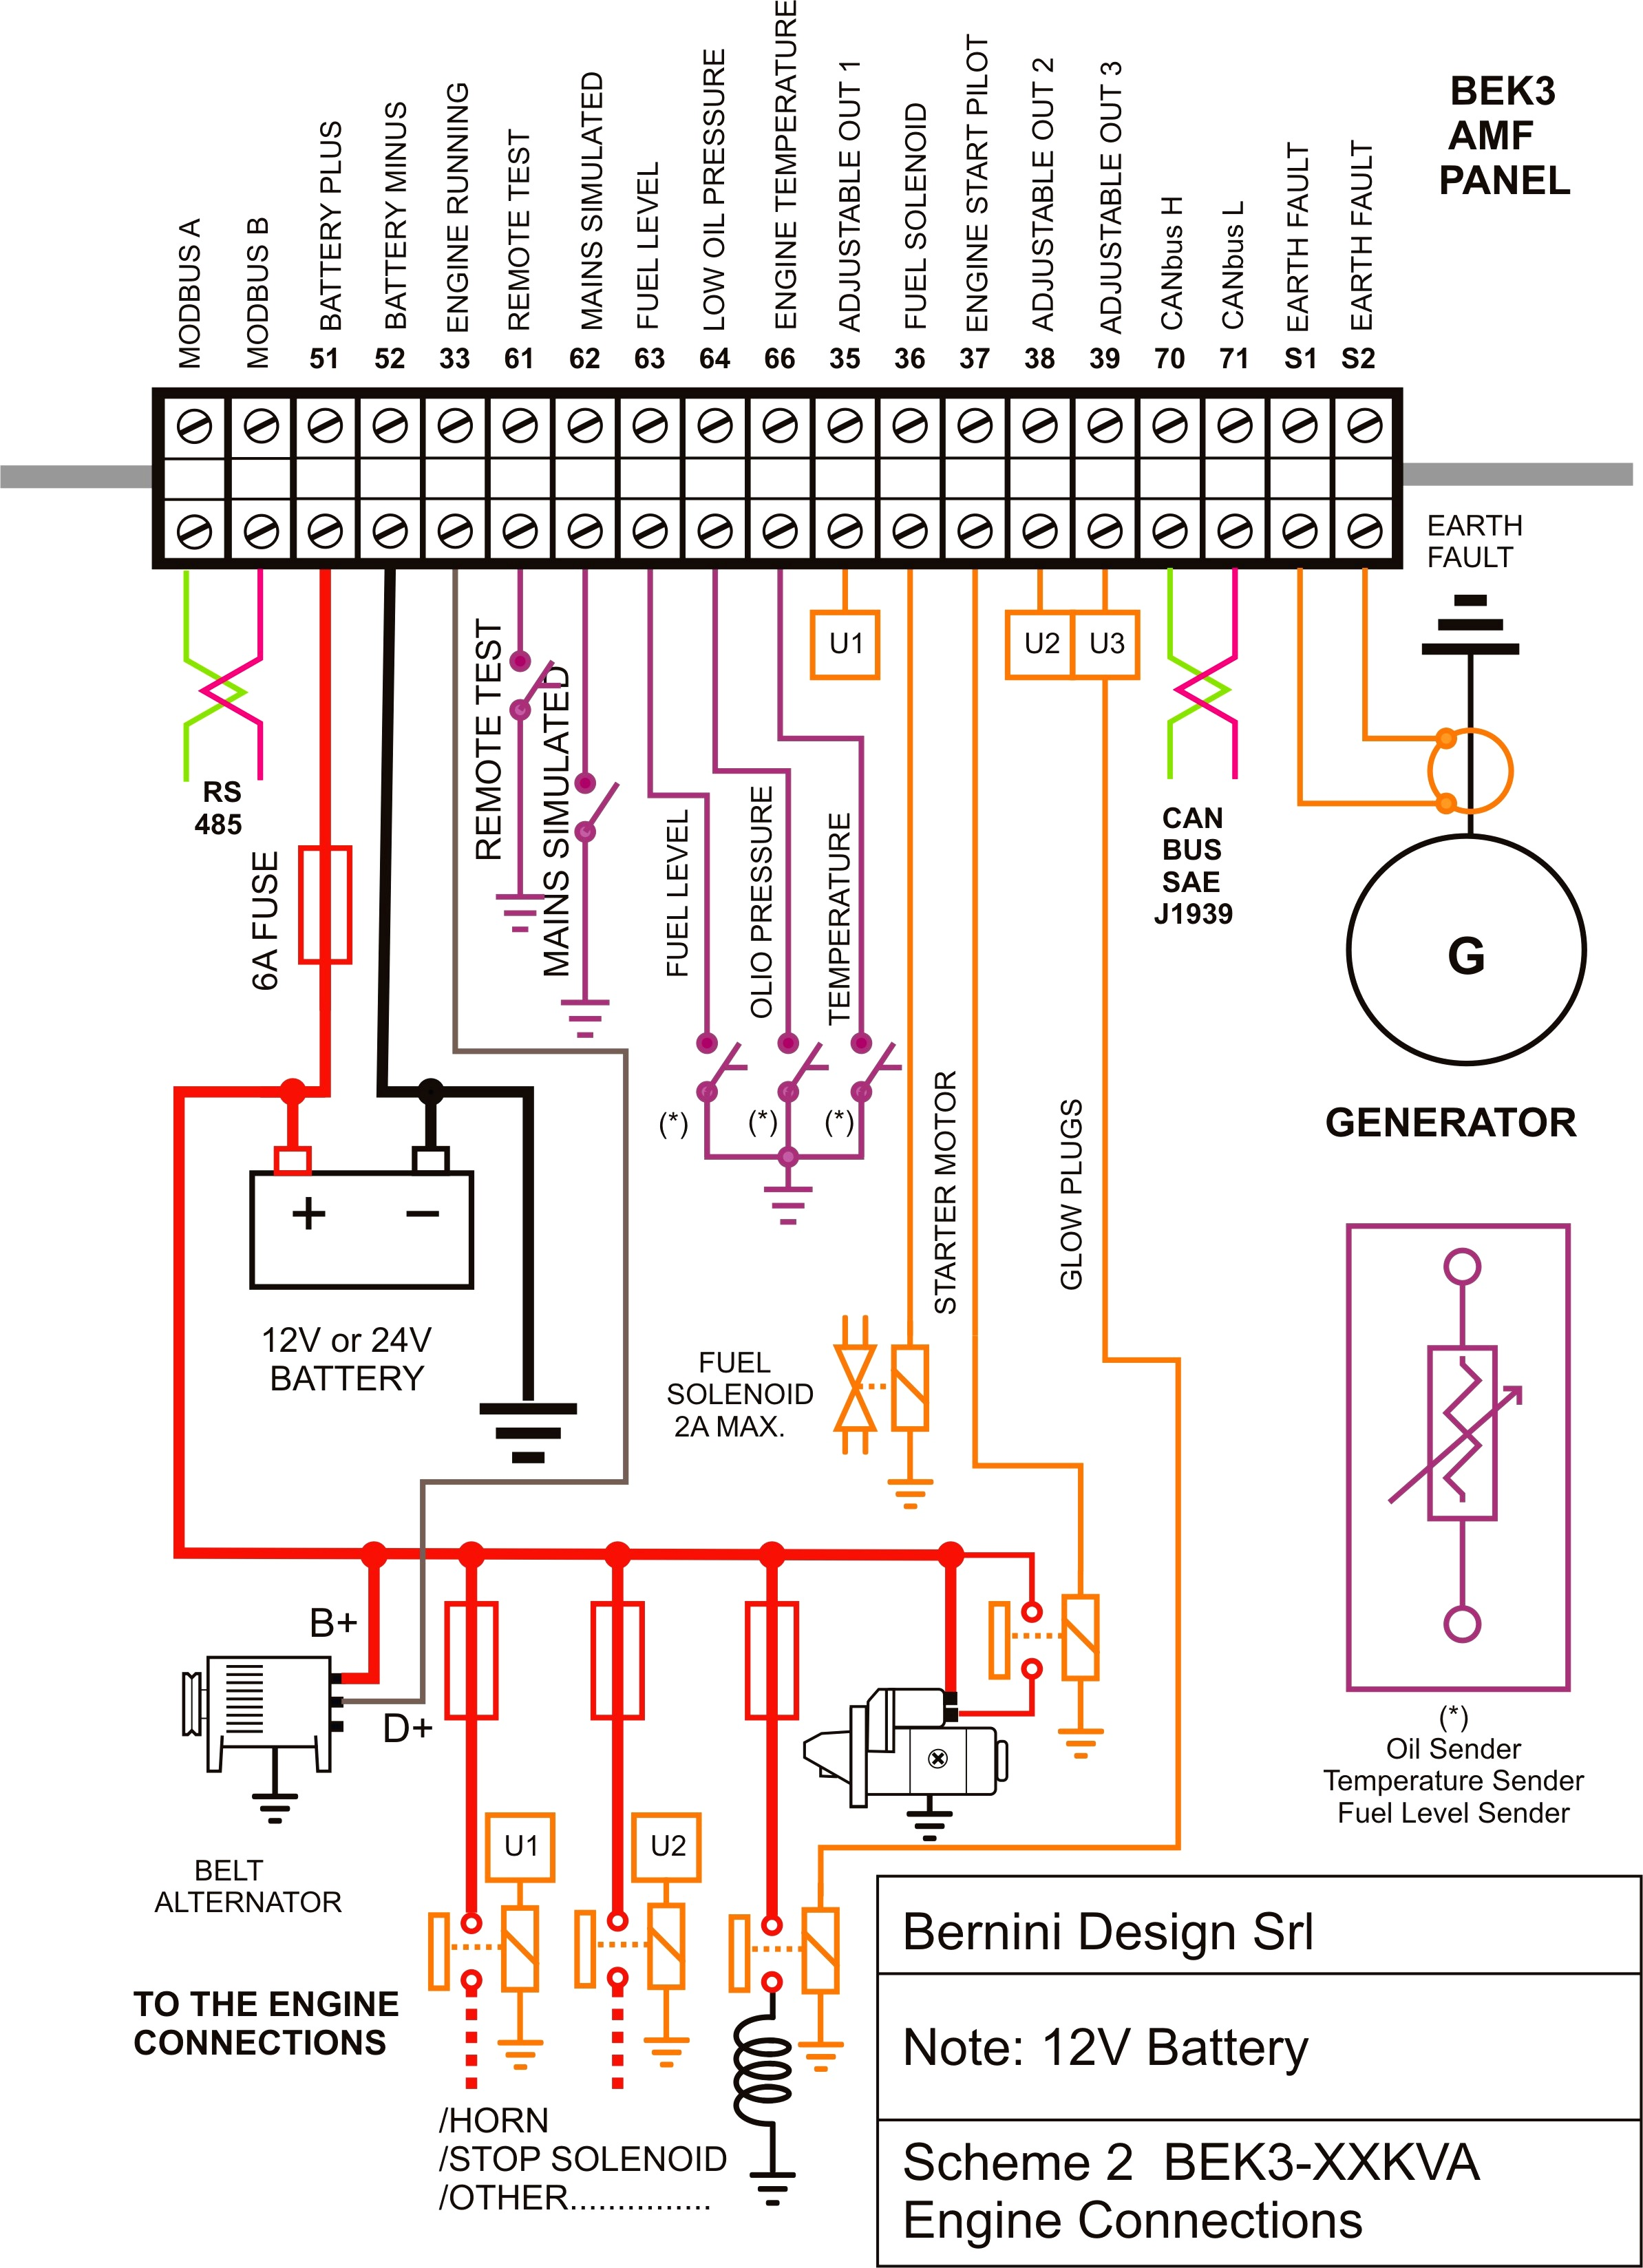 Electric Circuit Drawing At Free For Personal Use Series Electrical Diagram 2387x3295 Car Industrial Wiringam